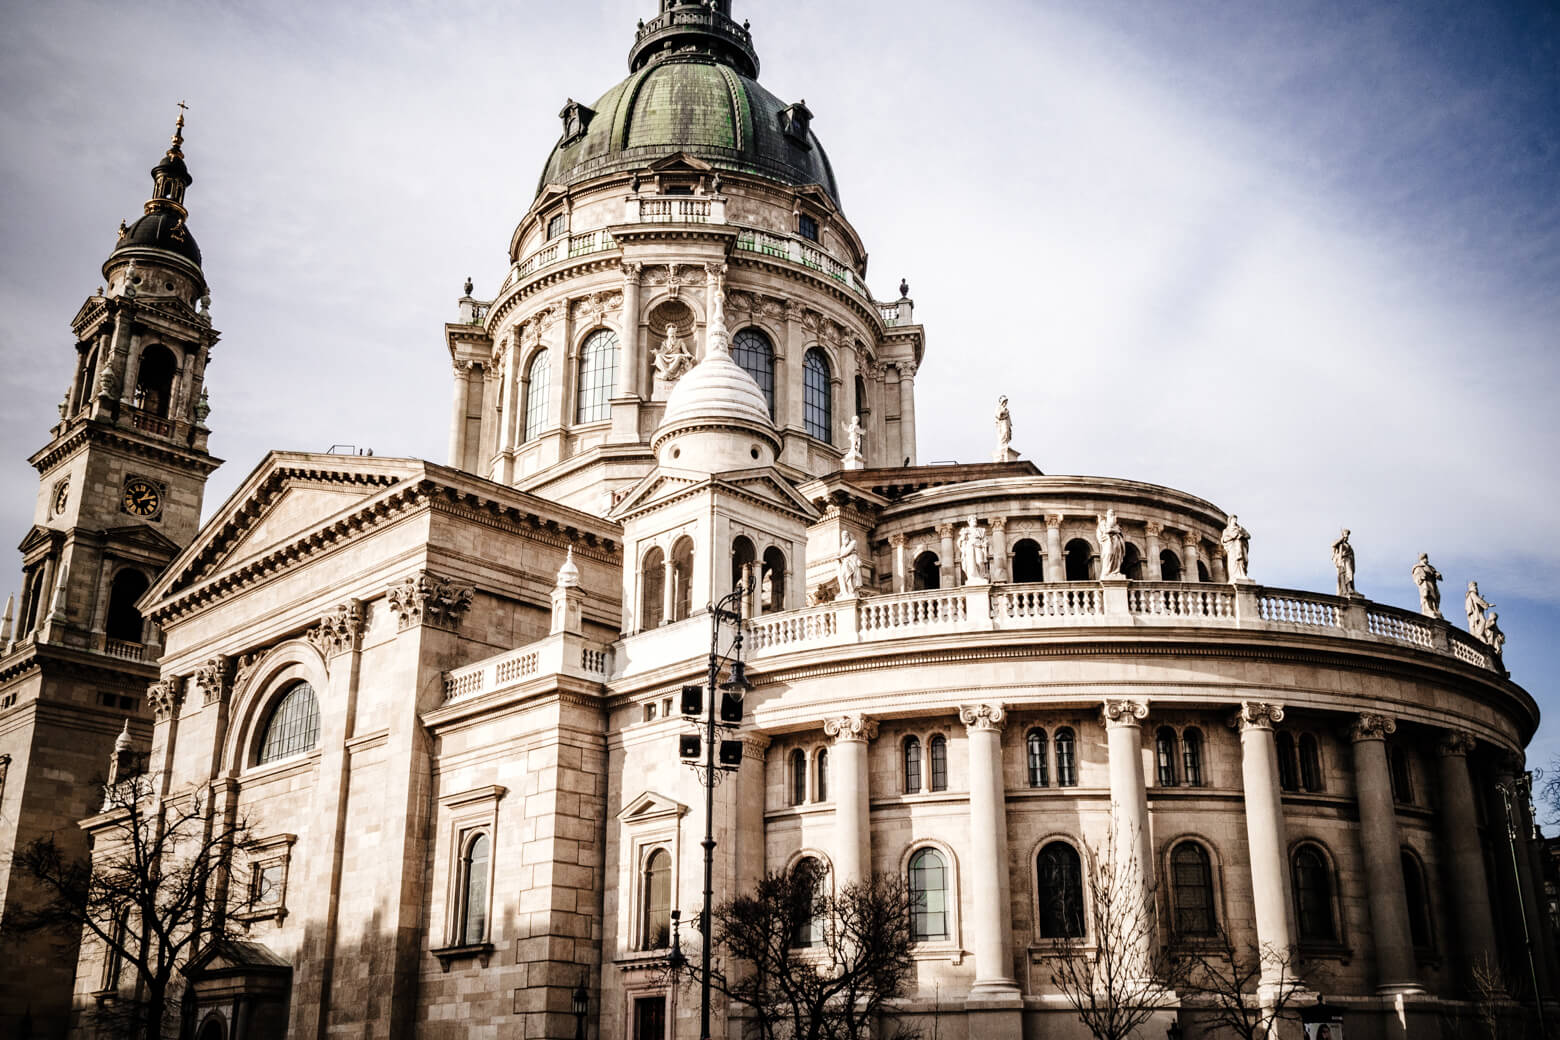 St Stephen's Basilica - District V